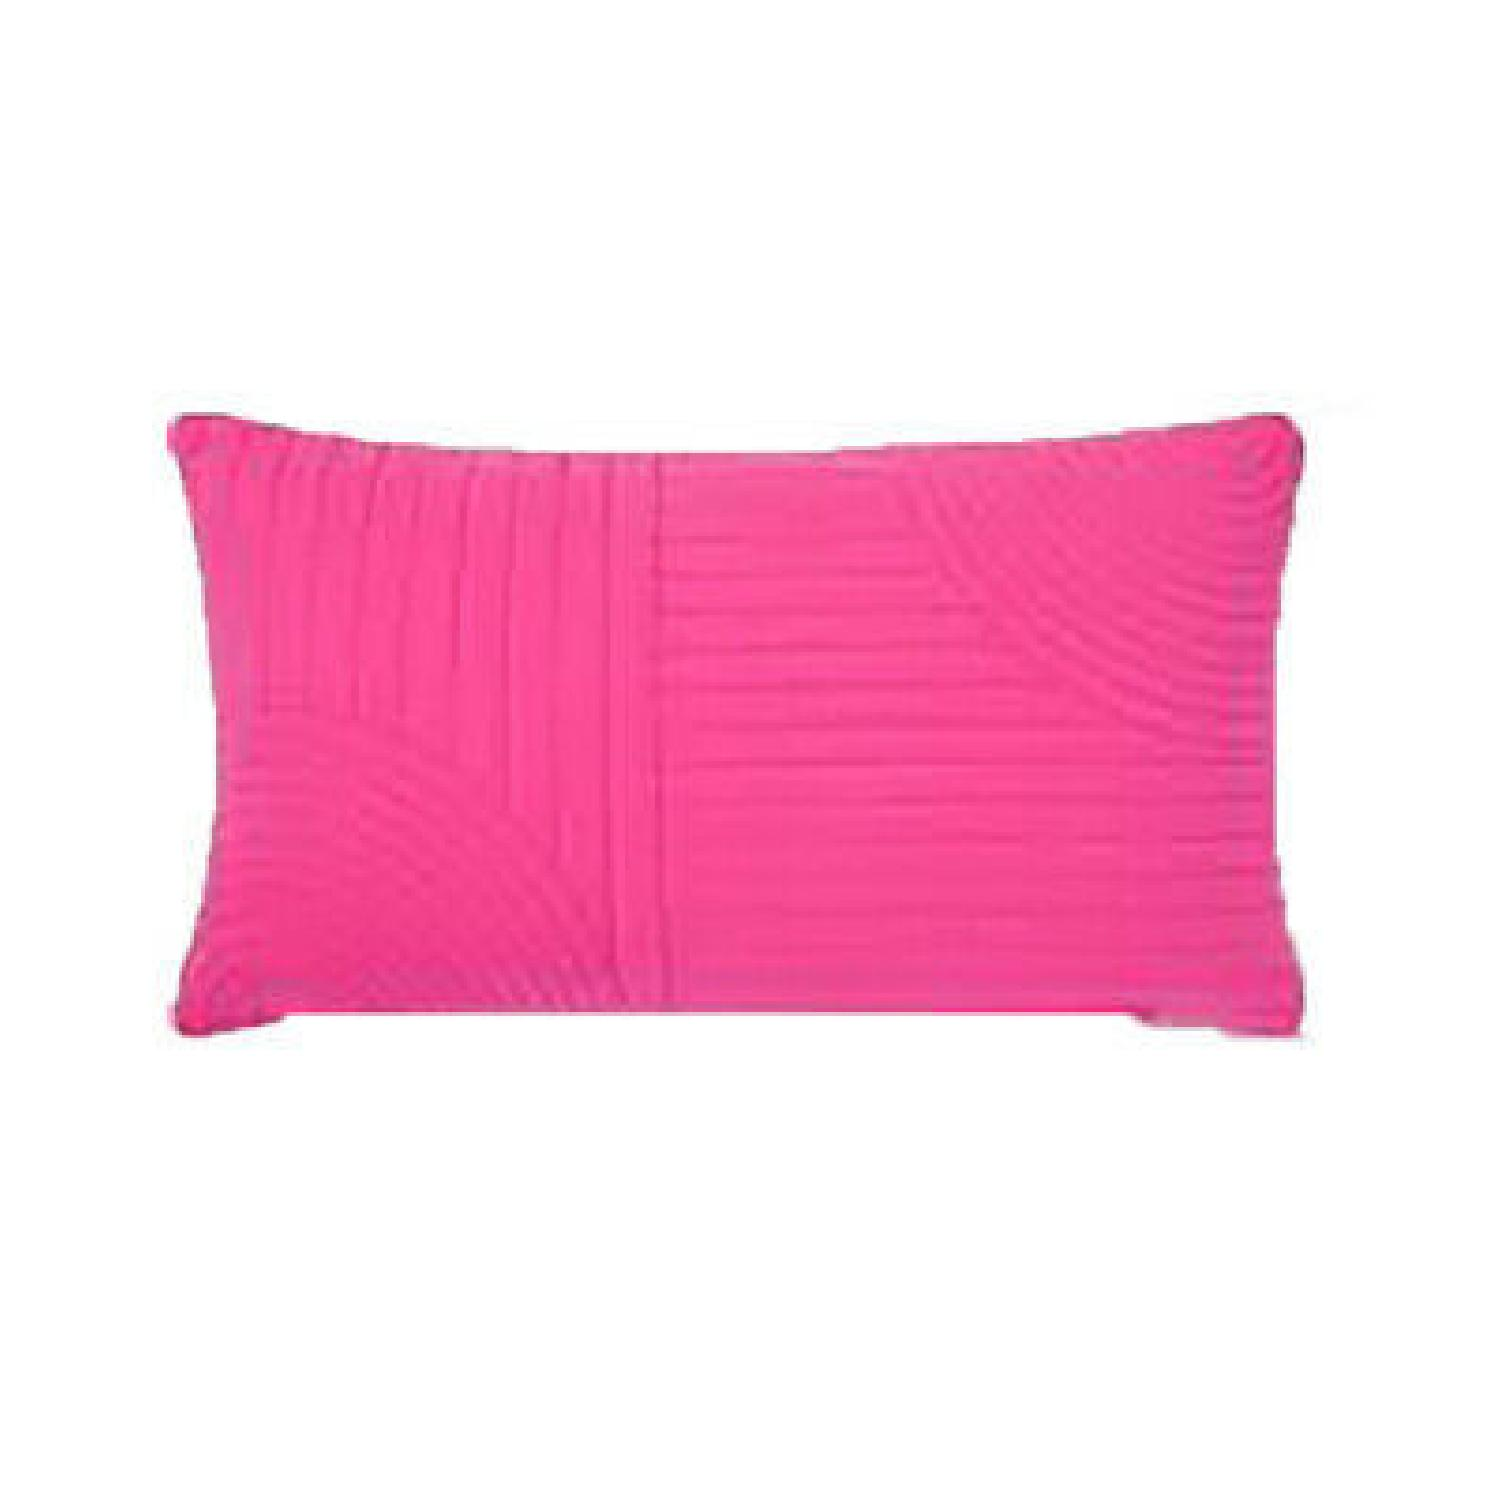 Hot Pink Quilted Lumbar Pillow - image-2